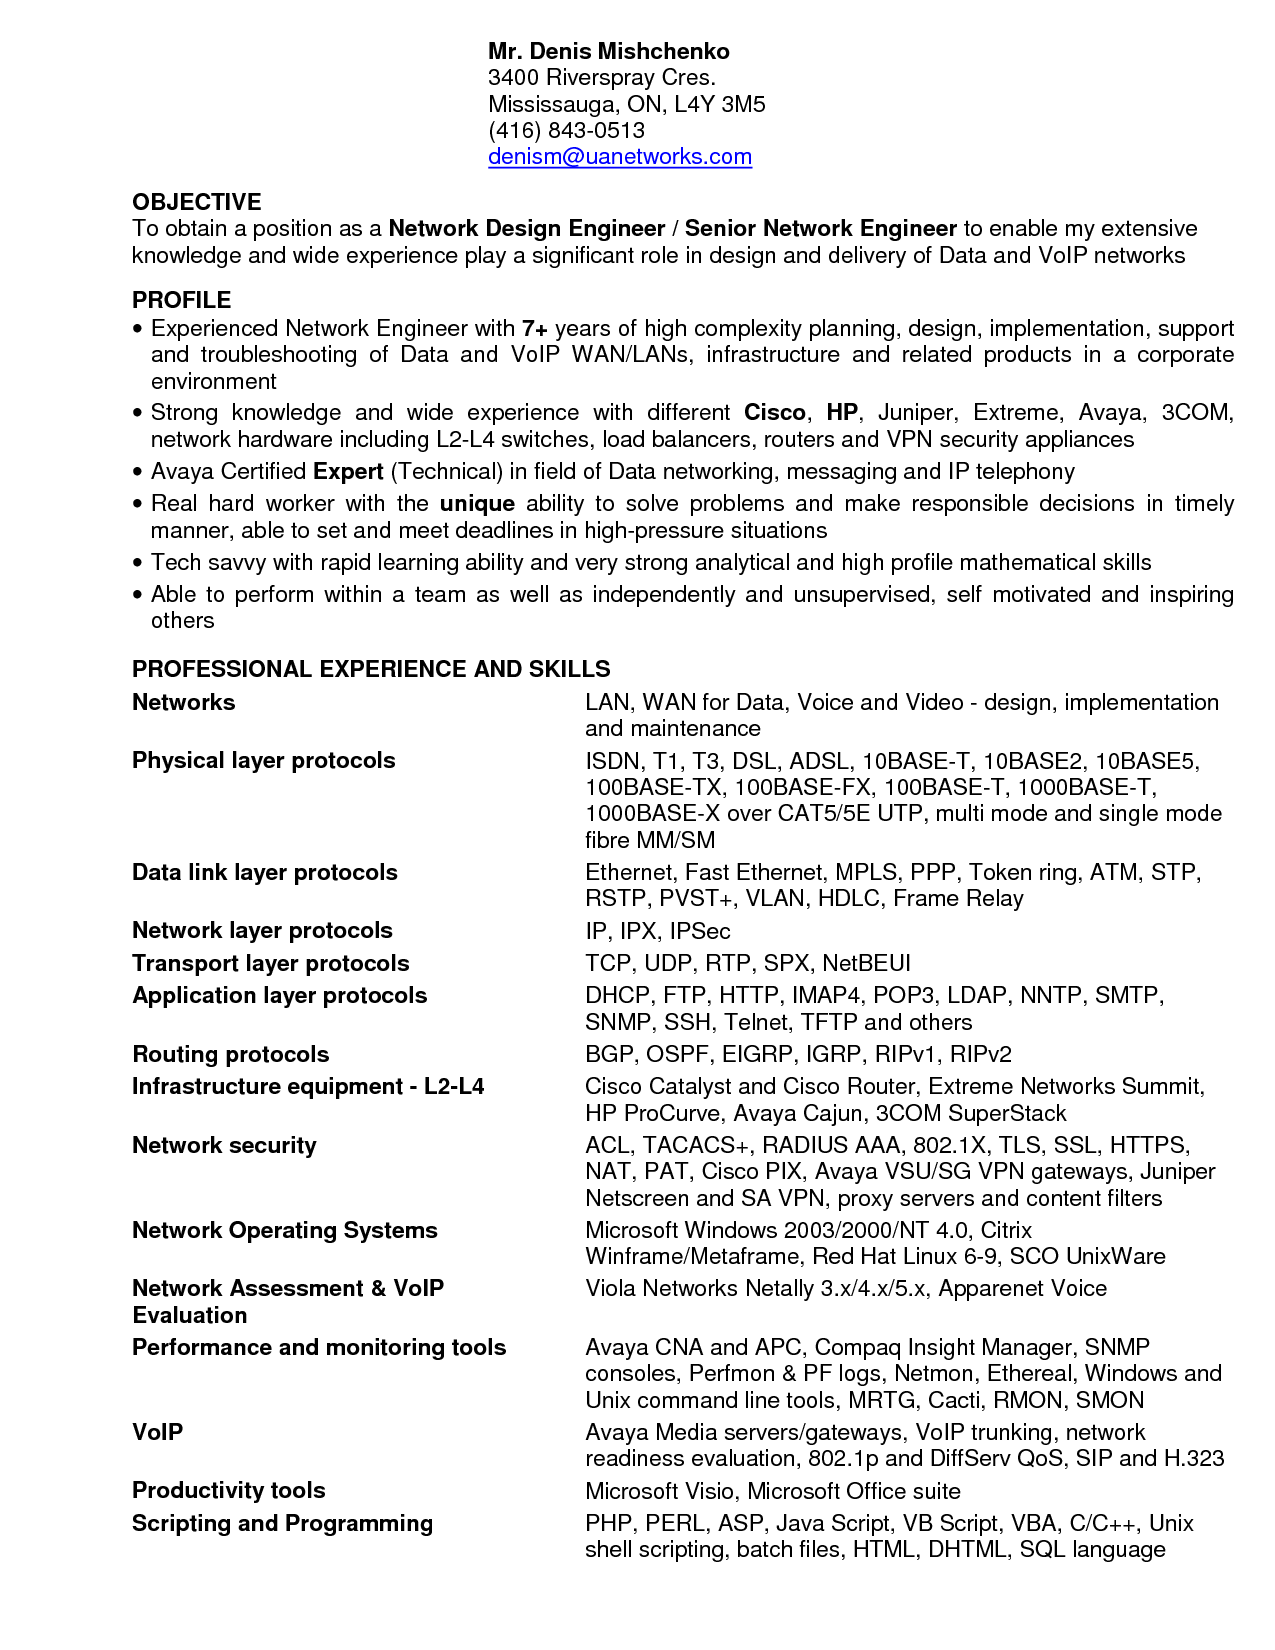 Entry Level Network Engineer Resume 28 Network Security Resume Sle Enernovva Org  News To Go 2 .